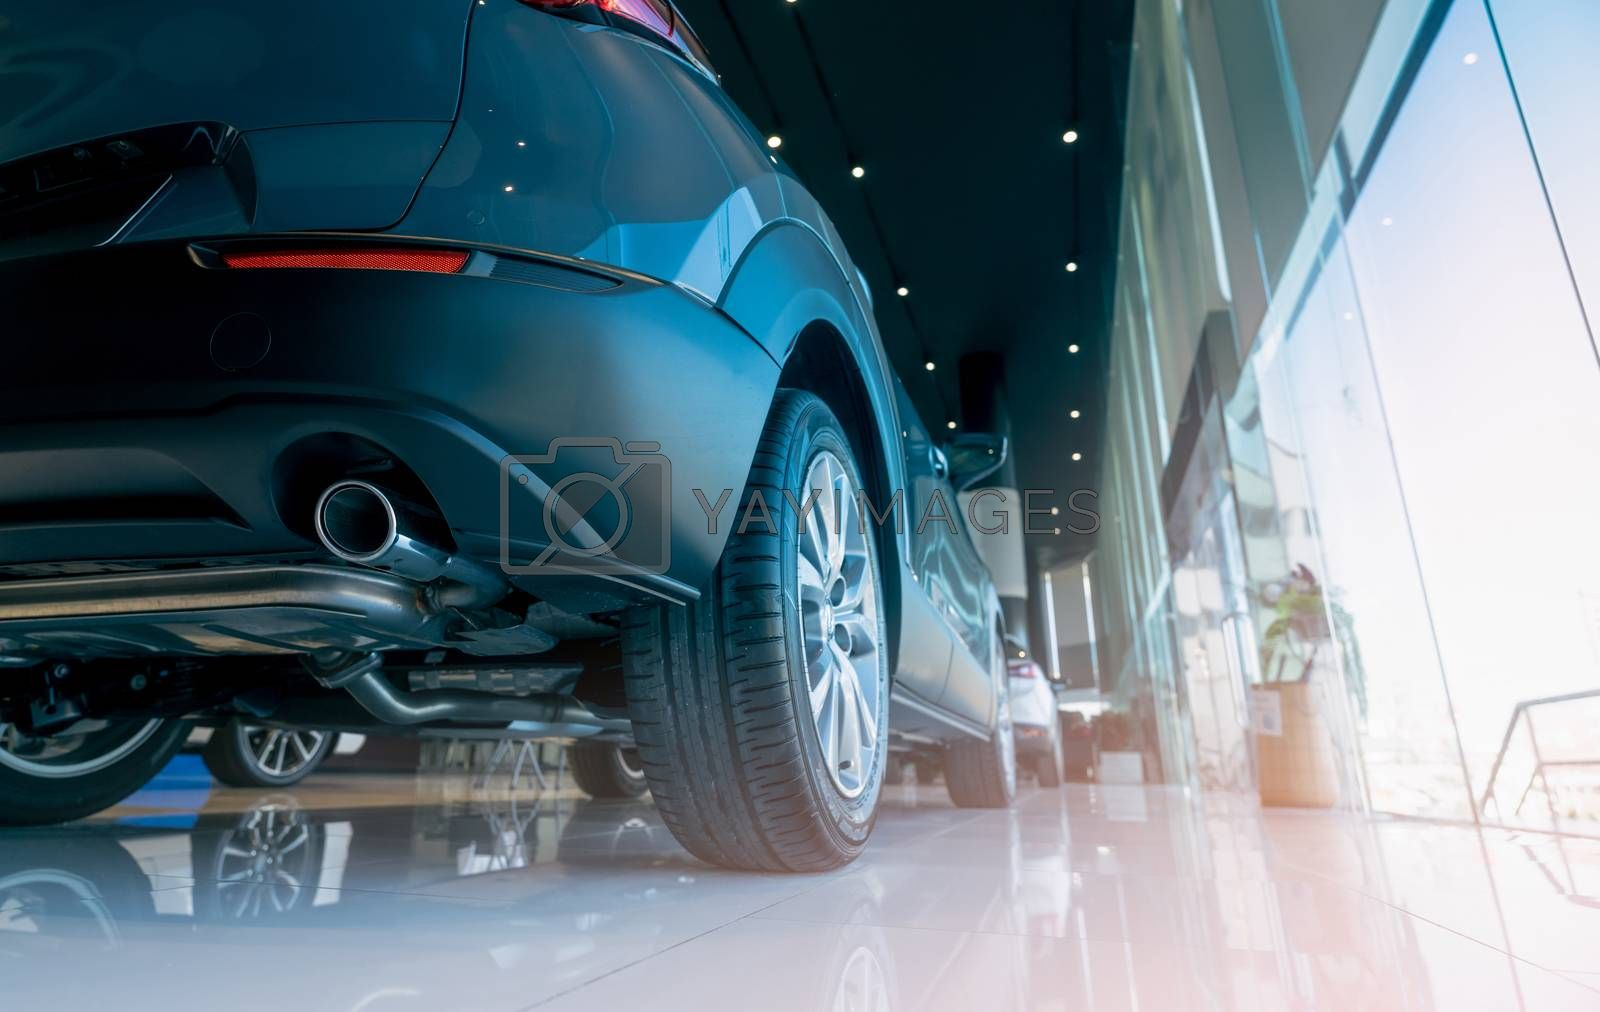 Selective focus on car in modern showroom. Back view of new car in glass building. Car dealership concept. Checklist of car before buying background. Electric automobile business. Showroom interior.